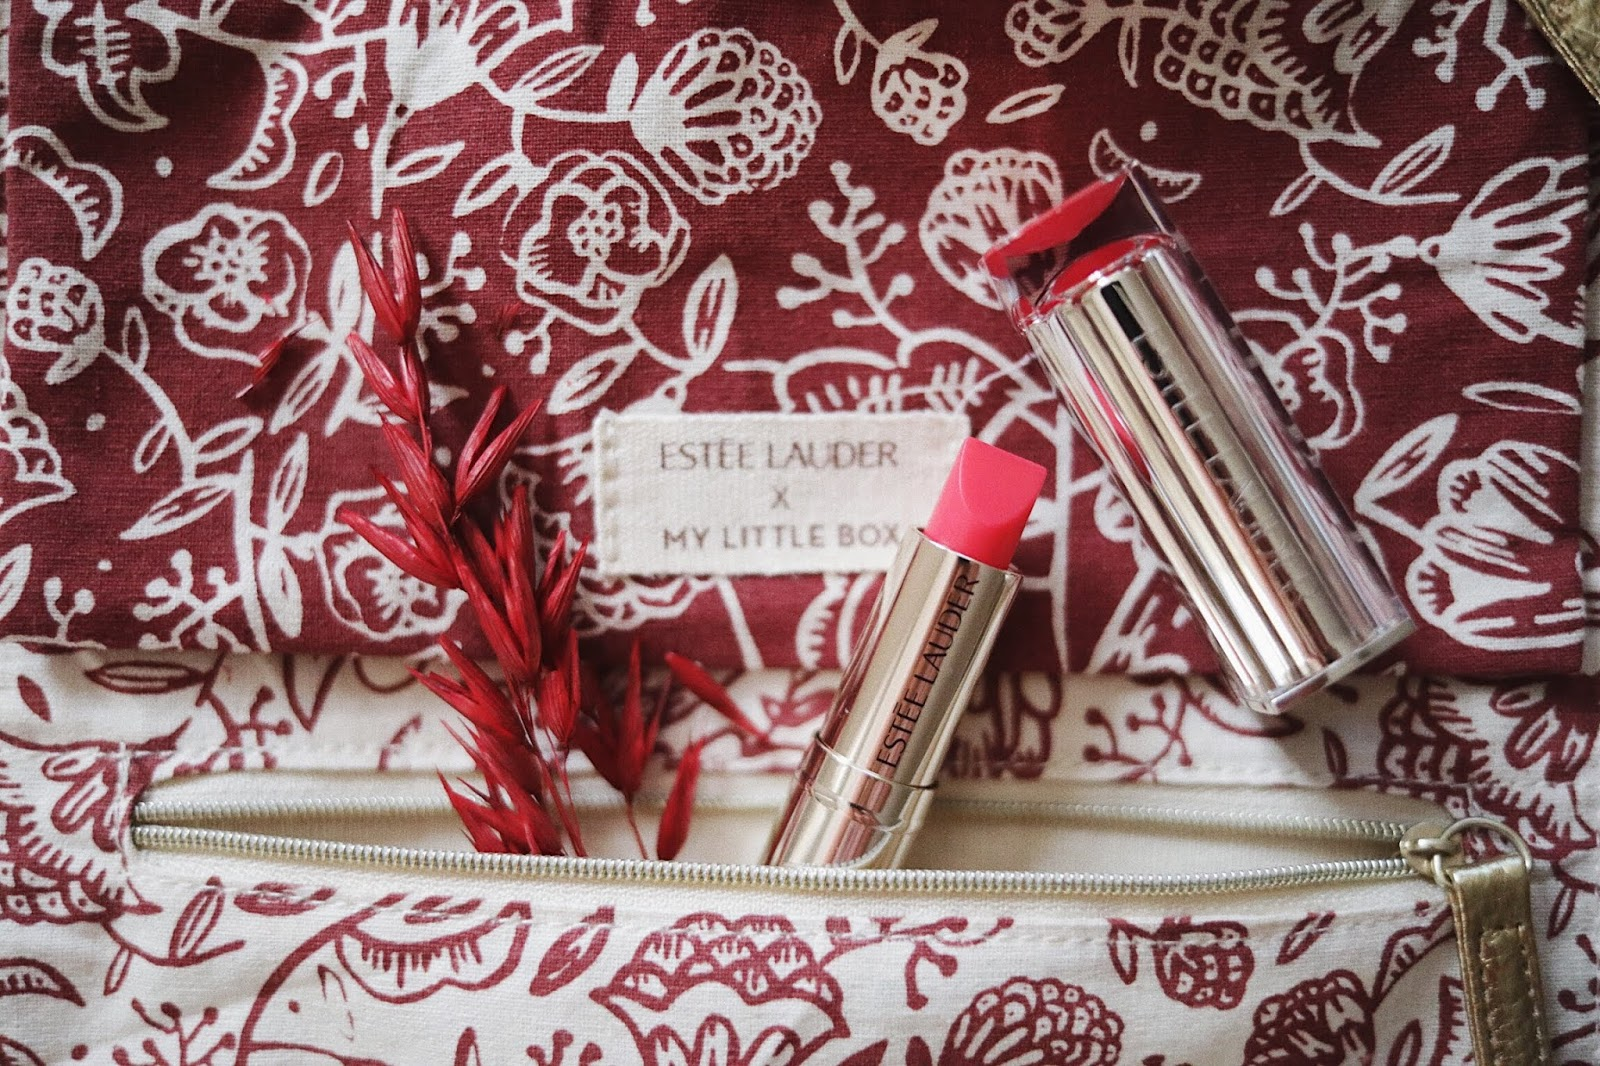 Estée Lauder , My Little Box , ESTÉELAUDERXMYLITTLEBOX , pure colore love , box octobre 2018 , rose mademoiselle, rose mademoiselle , blog beauté , France, Paris